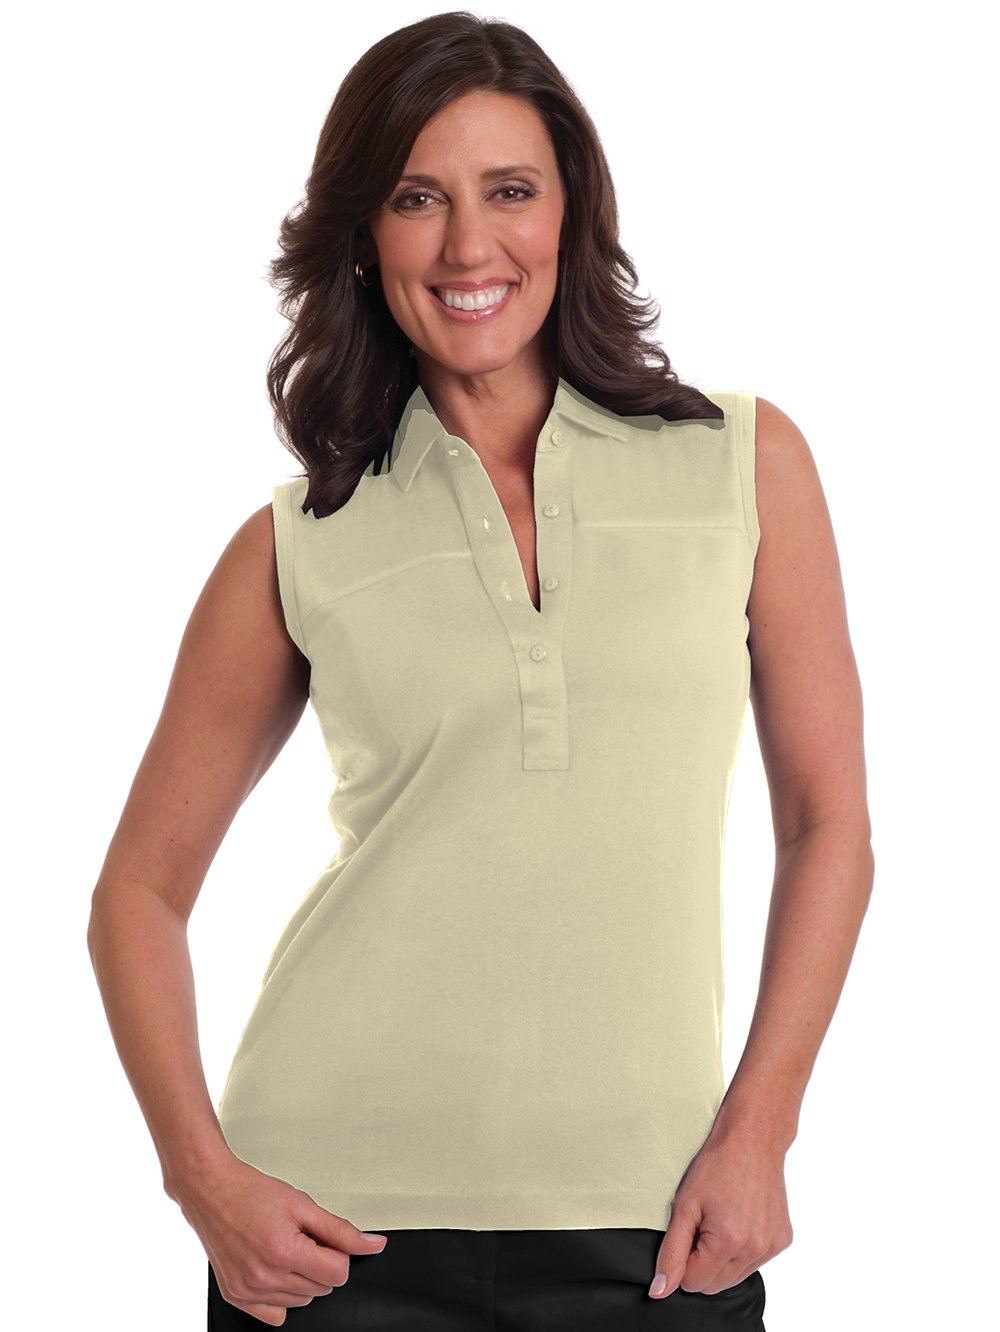 Sleeveless Solid Polo</br>Sand S50